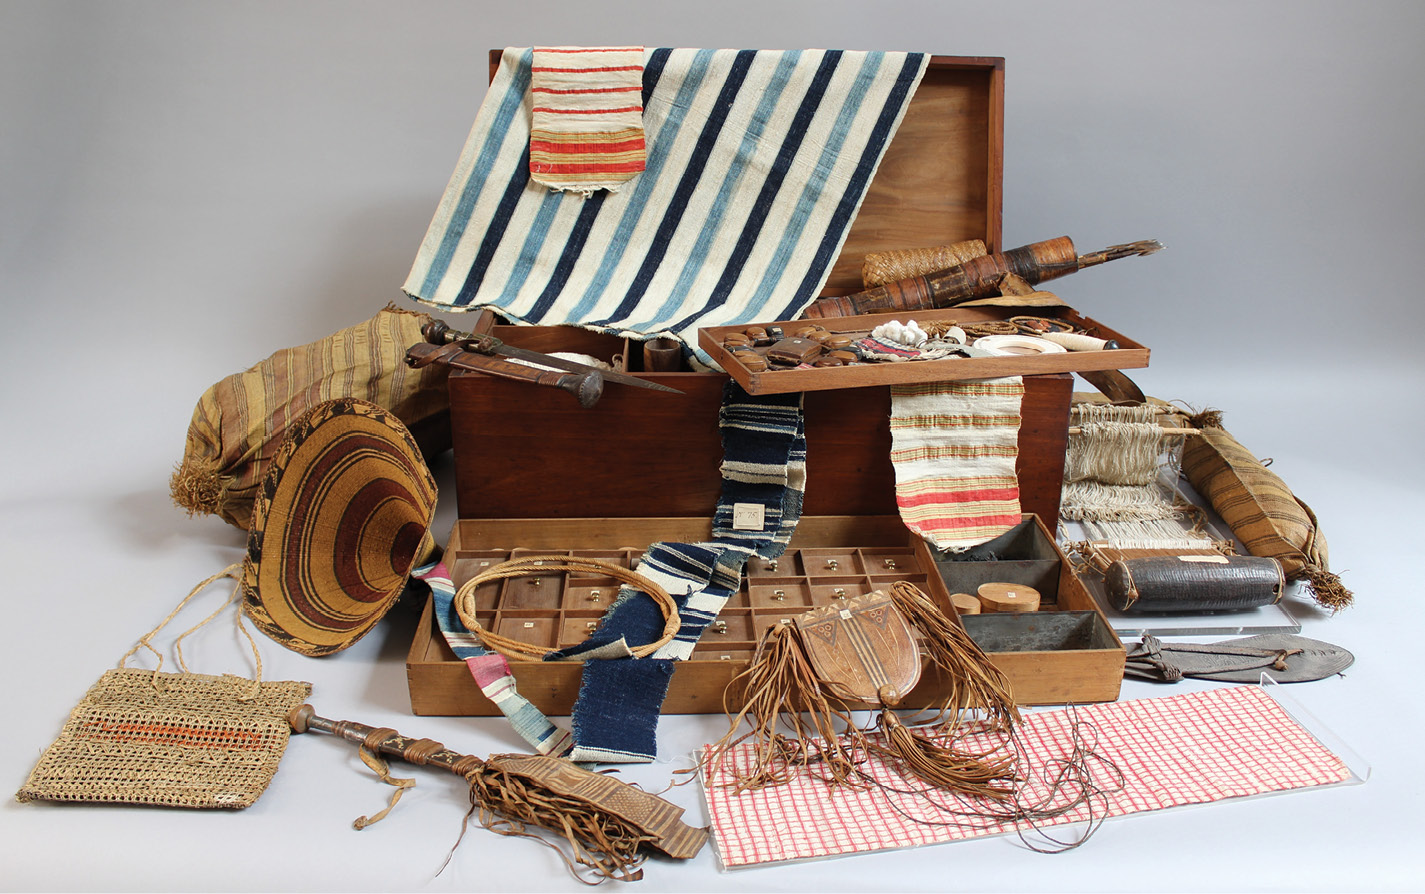 LEFT In his campaign to abolish slavery, Thomas Clarkson collected items from the trade to demonstrate its cruelty. He kept these items, which included handcuffs, leg-shackles, thumbscrews, whips, and branding irons, in a specially made chest, which is currently housed in the Wisbech & Fenland Museum.